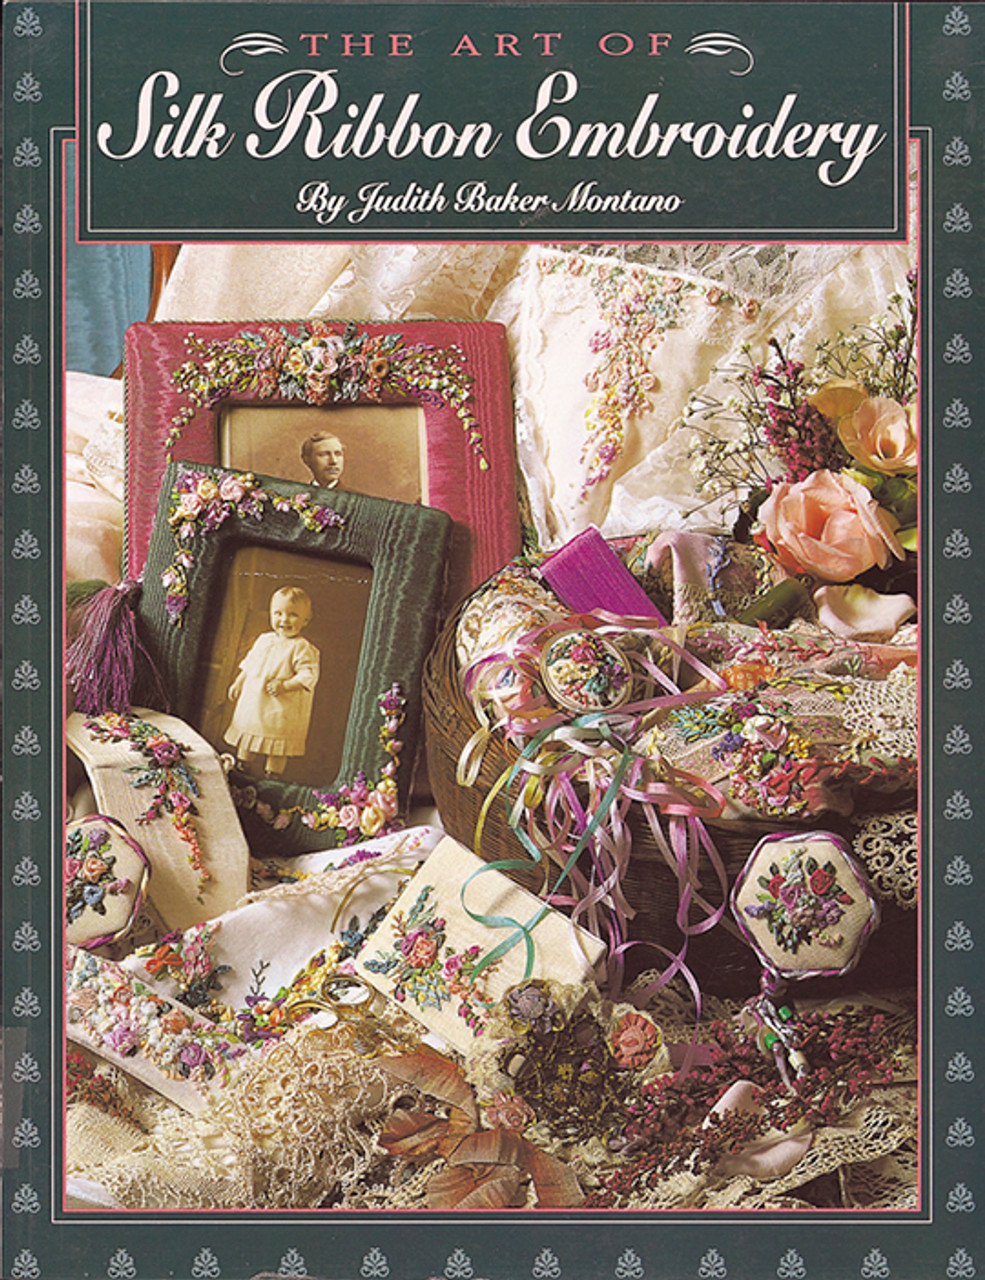 Silk Ribbon Embroidery : ribbon, embroidery, Ribbon, Embroidery, Print-on-Demand, Edition, Publishing